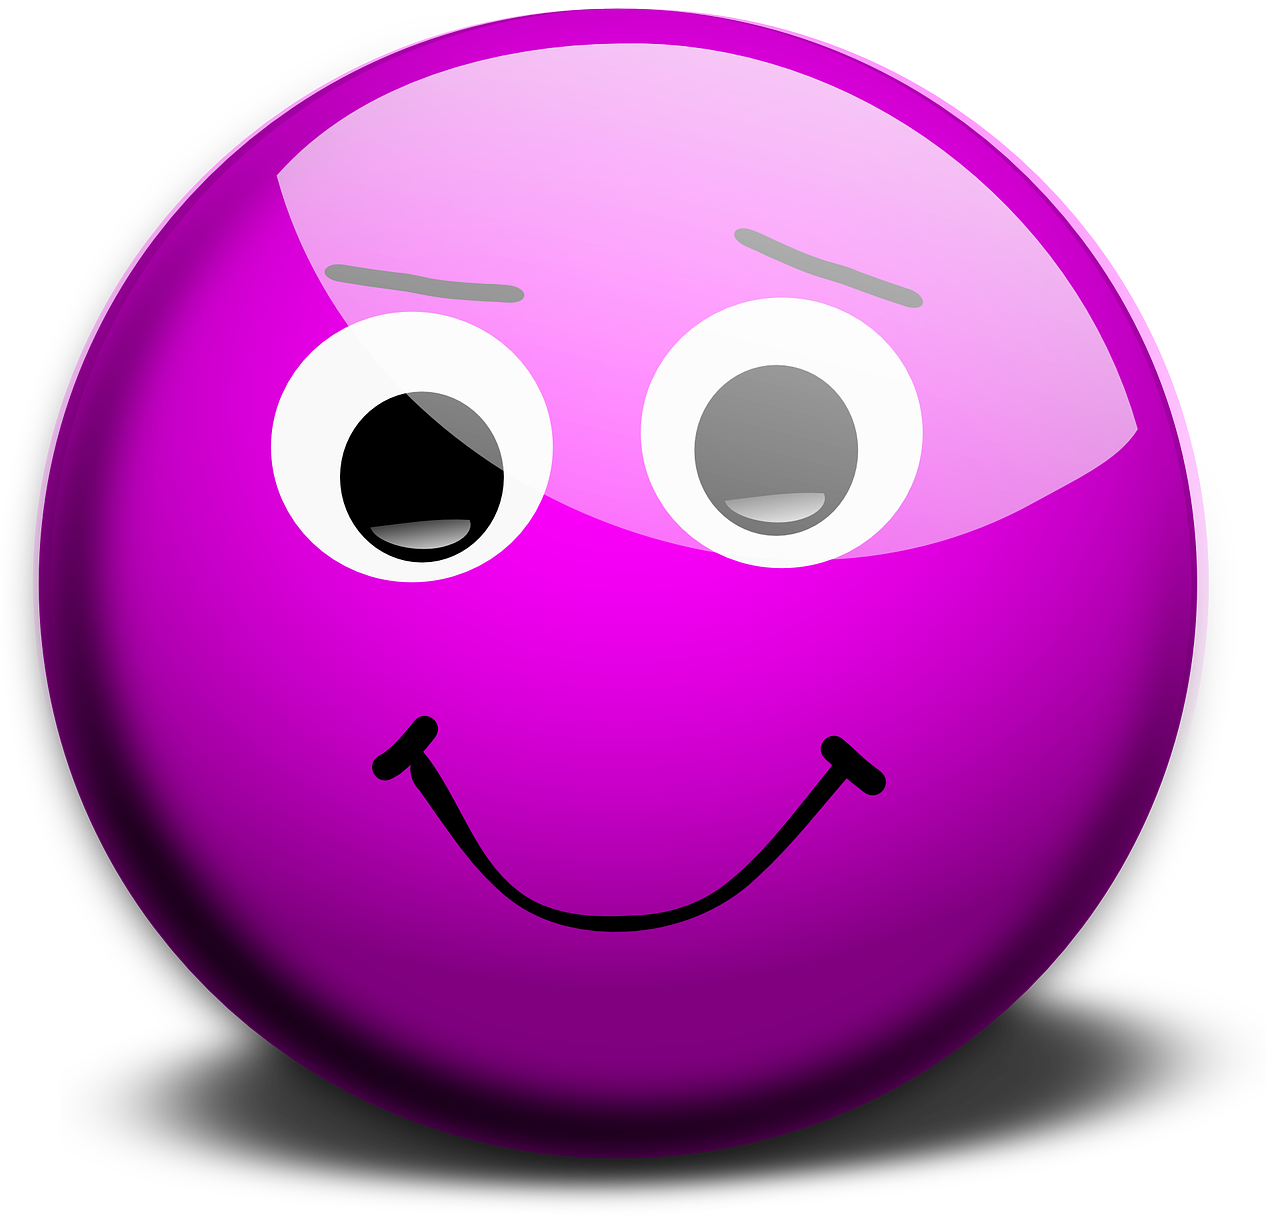 smiley-150655_1280.png